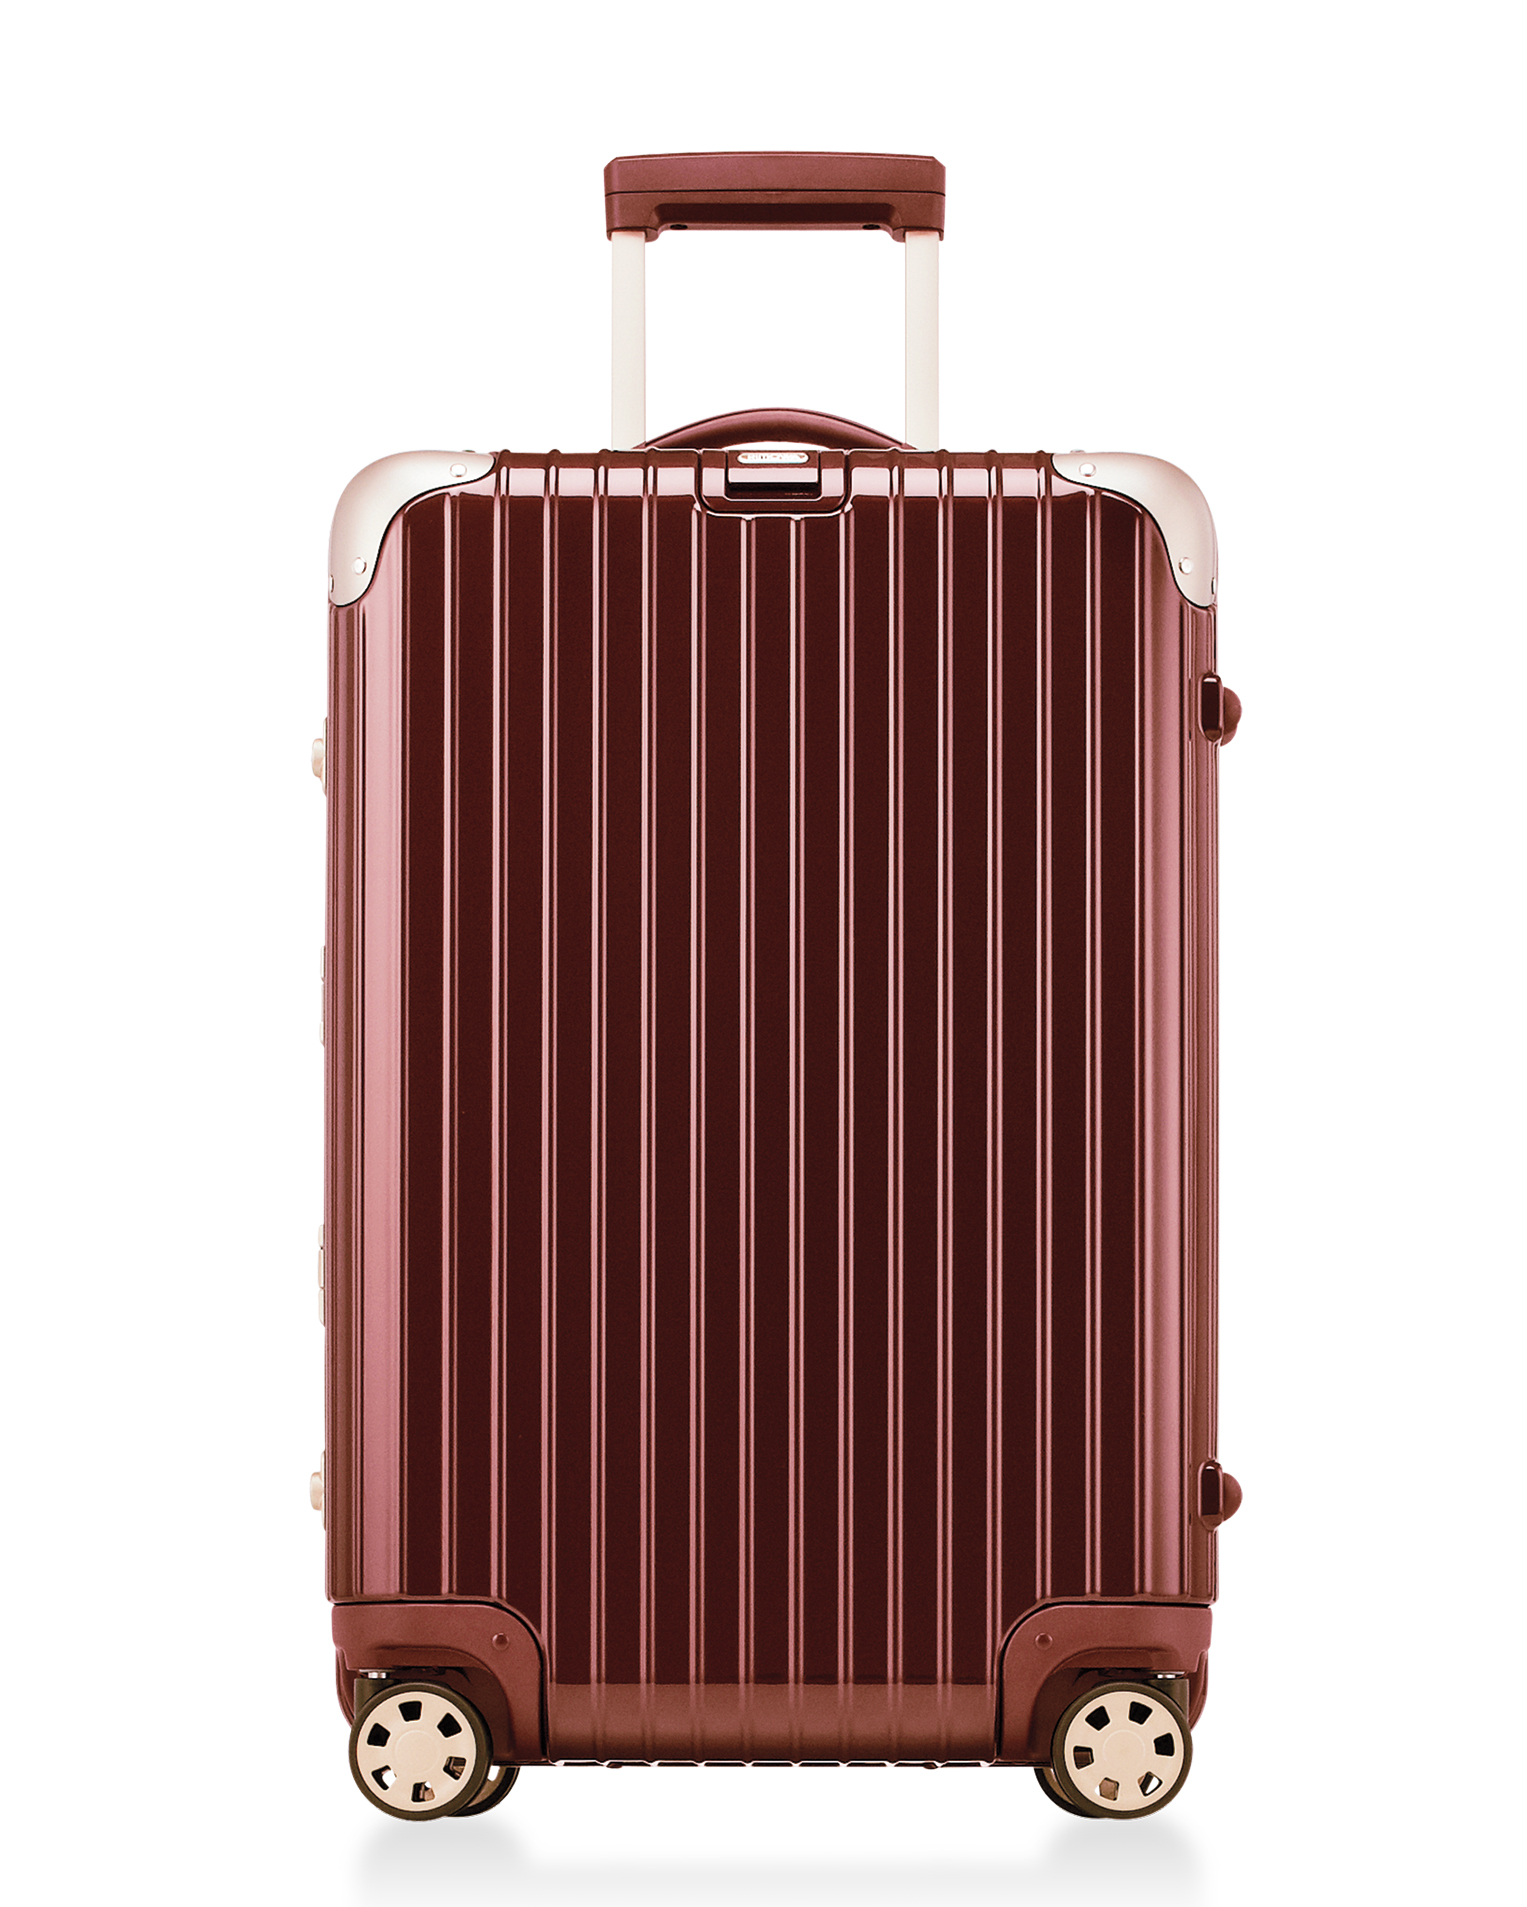 rolling-suitcase-limbo-26-mw-in-carmona-red-front-s112129.jpg